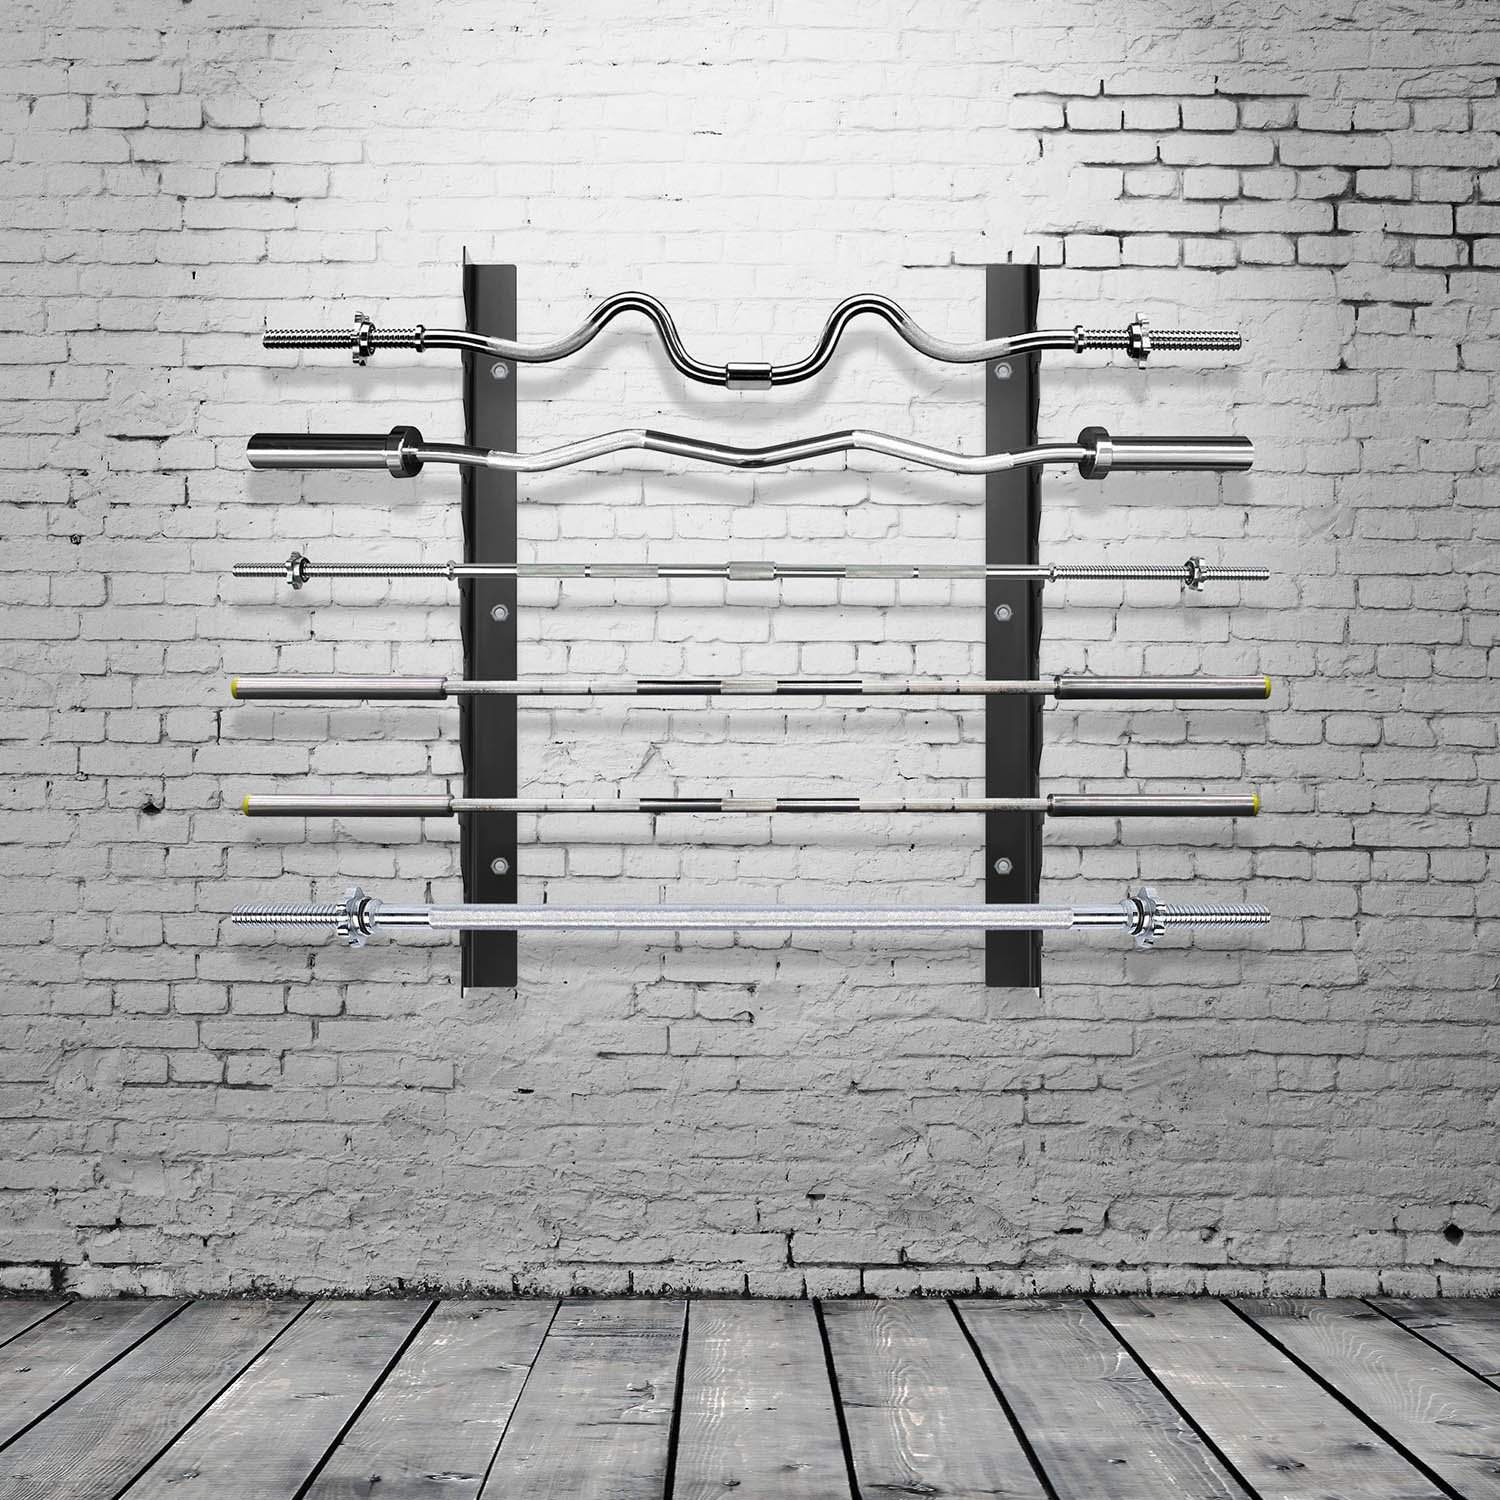 Ollieroo Olympic Barbell Rack Bar Storage, Horizontal Wall Mount Bar Plate Storage Rack, Holds 6 Barbells by Ollieroo